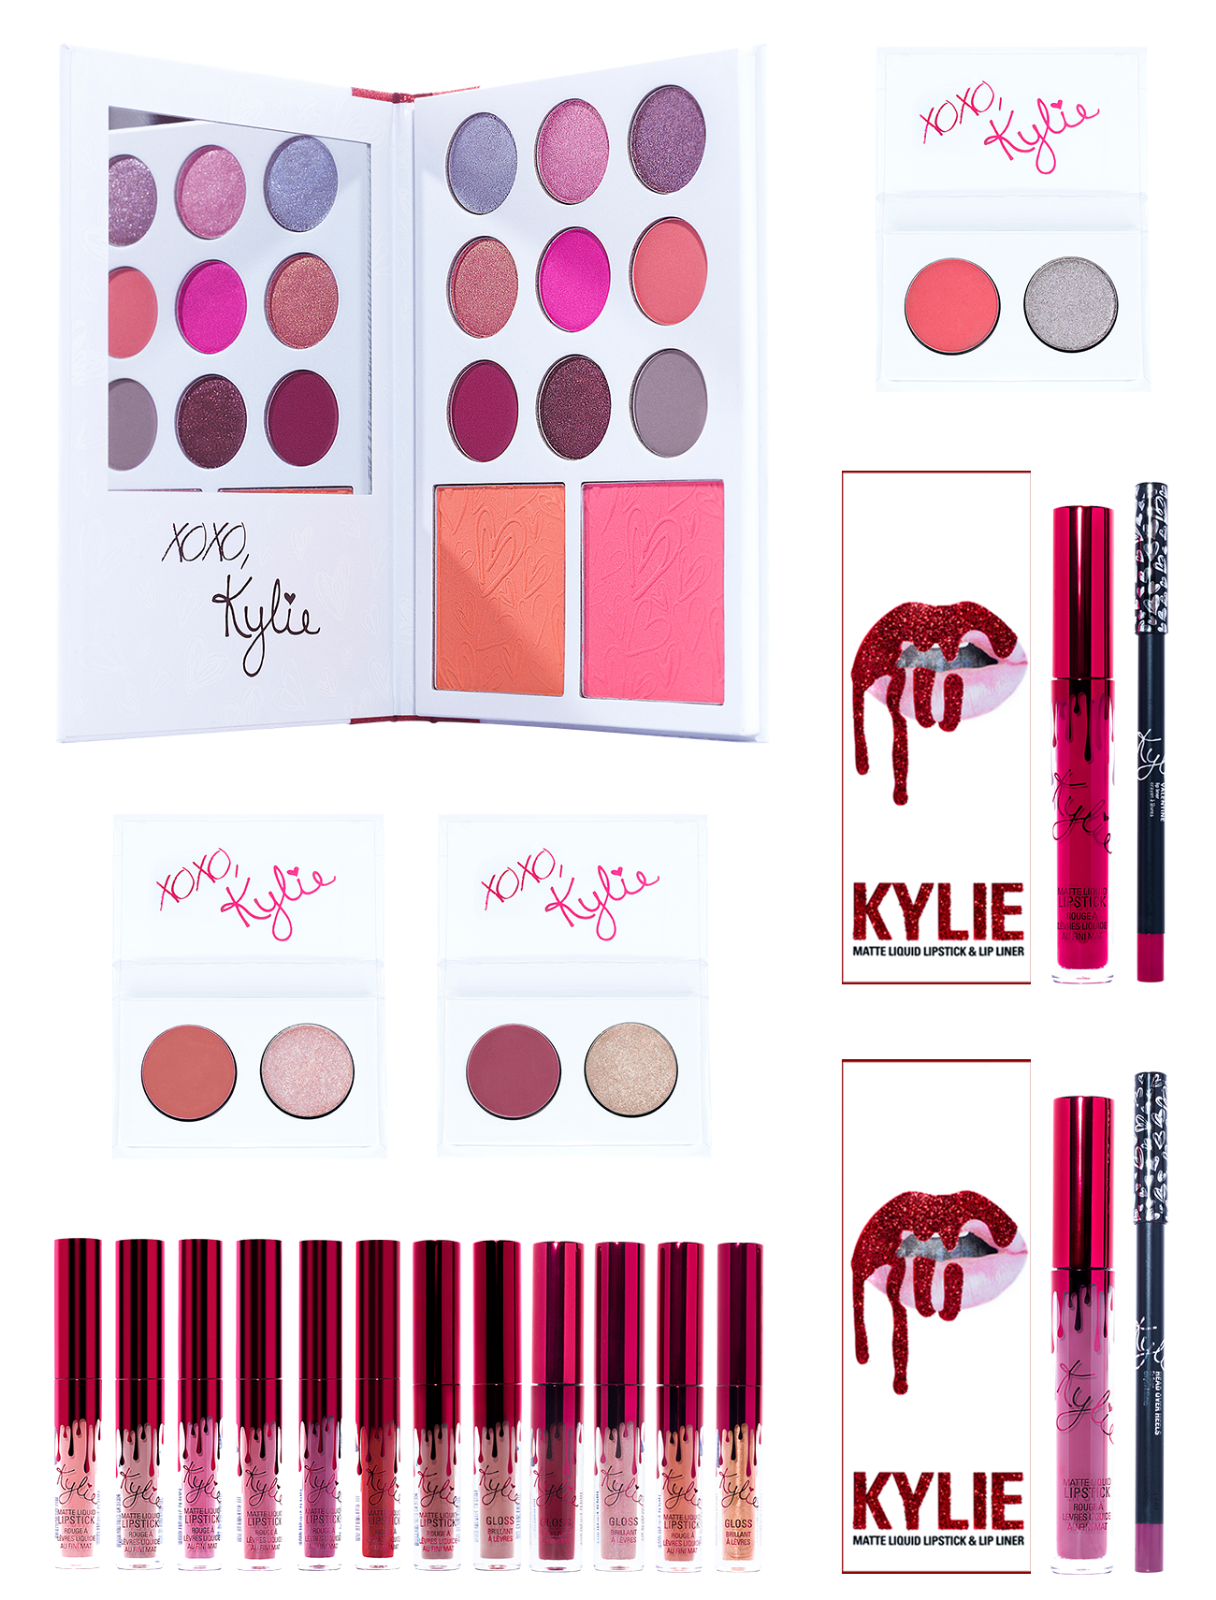 Kylie Cosmetics Valentines Day Limited Edition Collection Mini Kit